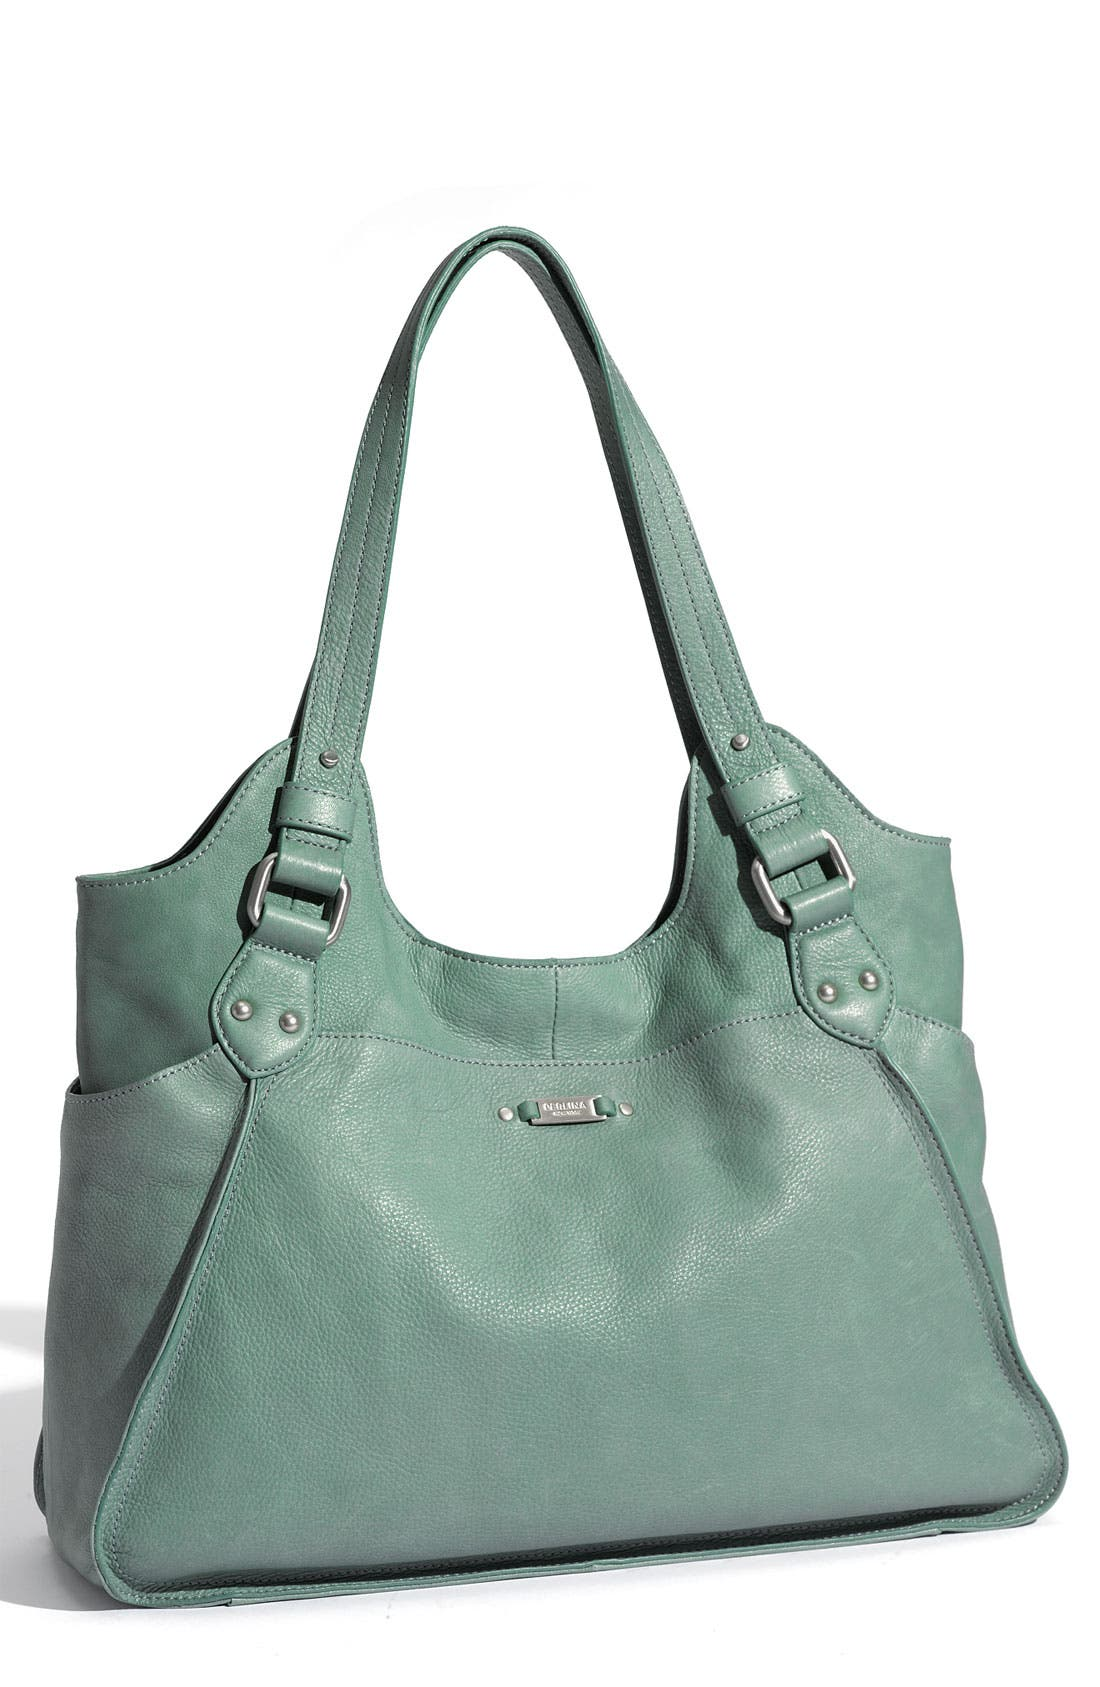 Main Image - Perlina 'Claire' Leather Tote